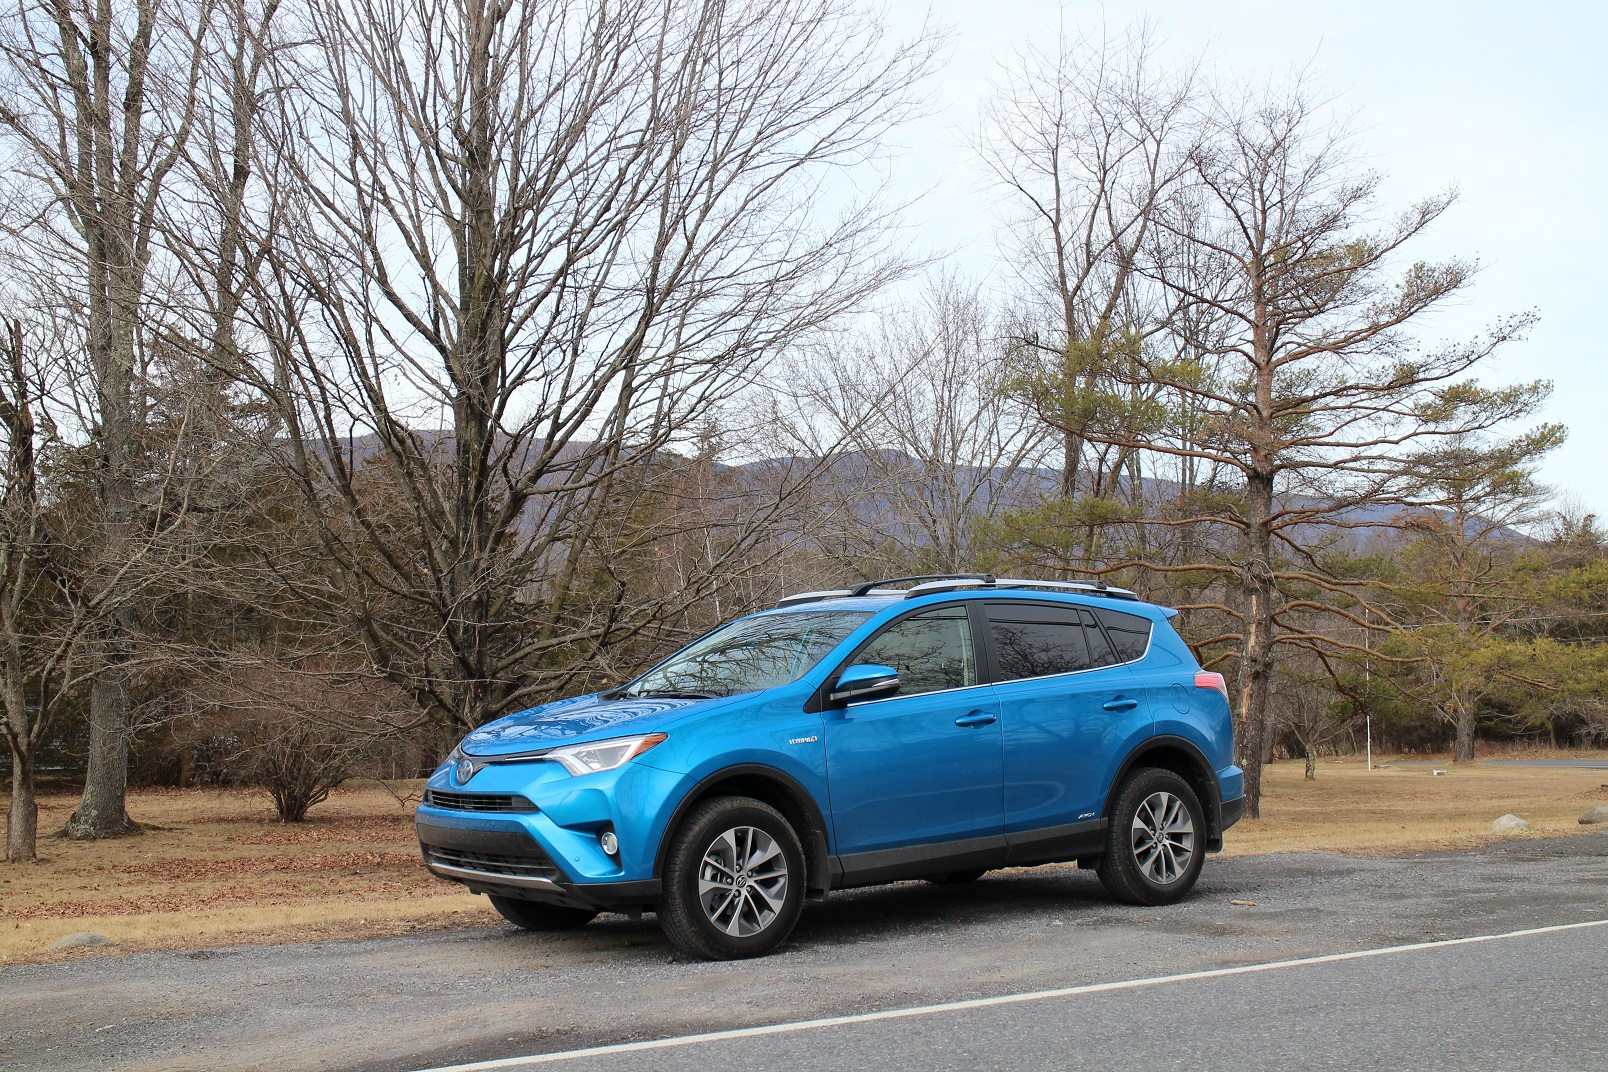 2016 toyota rav4 hybrid gas mileage review. Black Bedroom Furniture Sets. Home Design Ideas